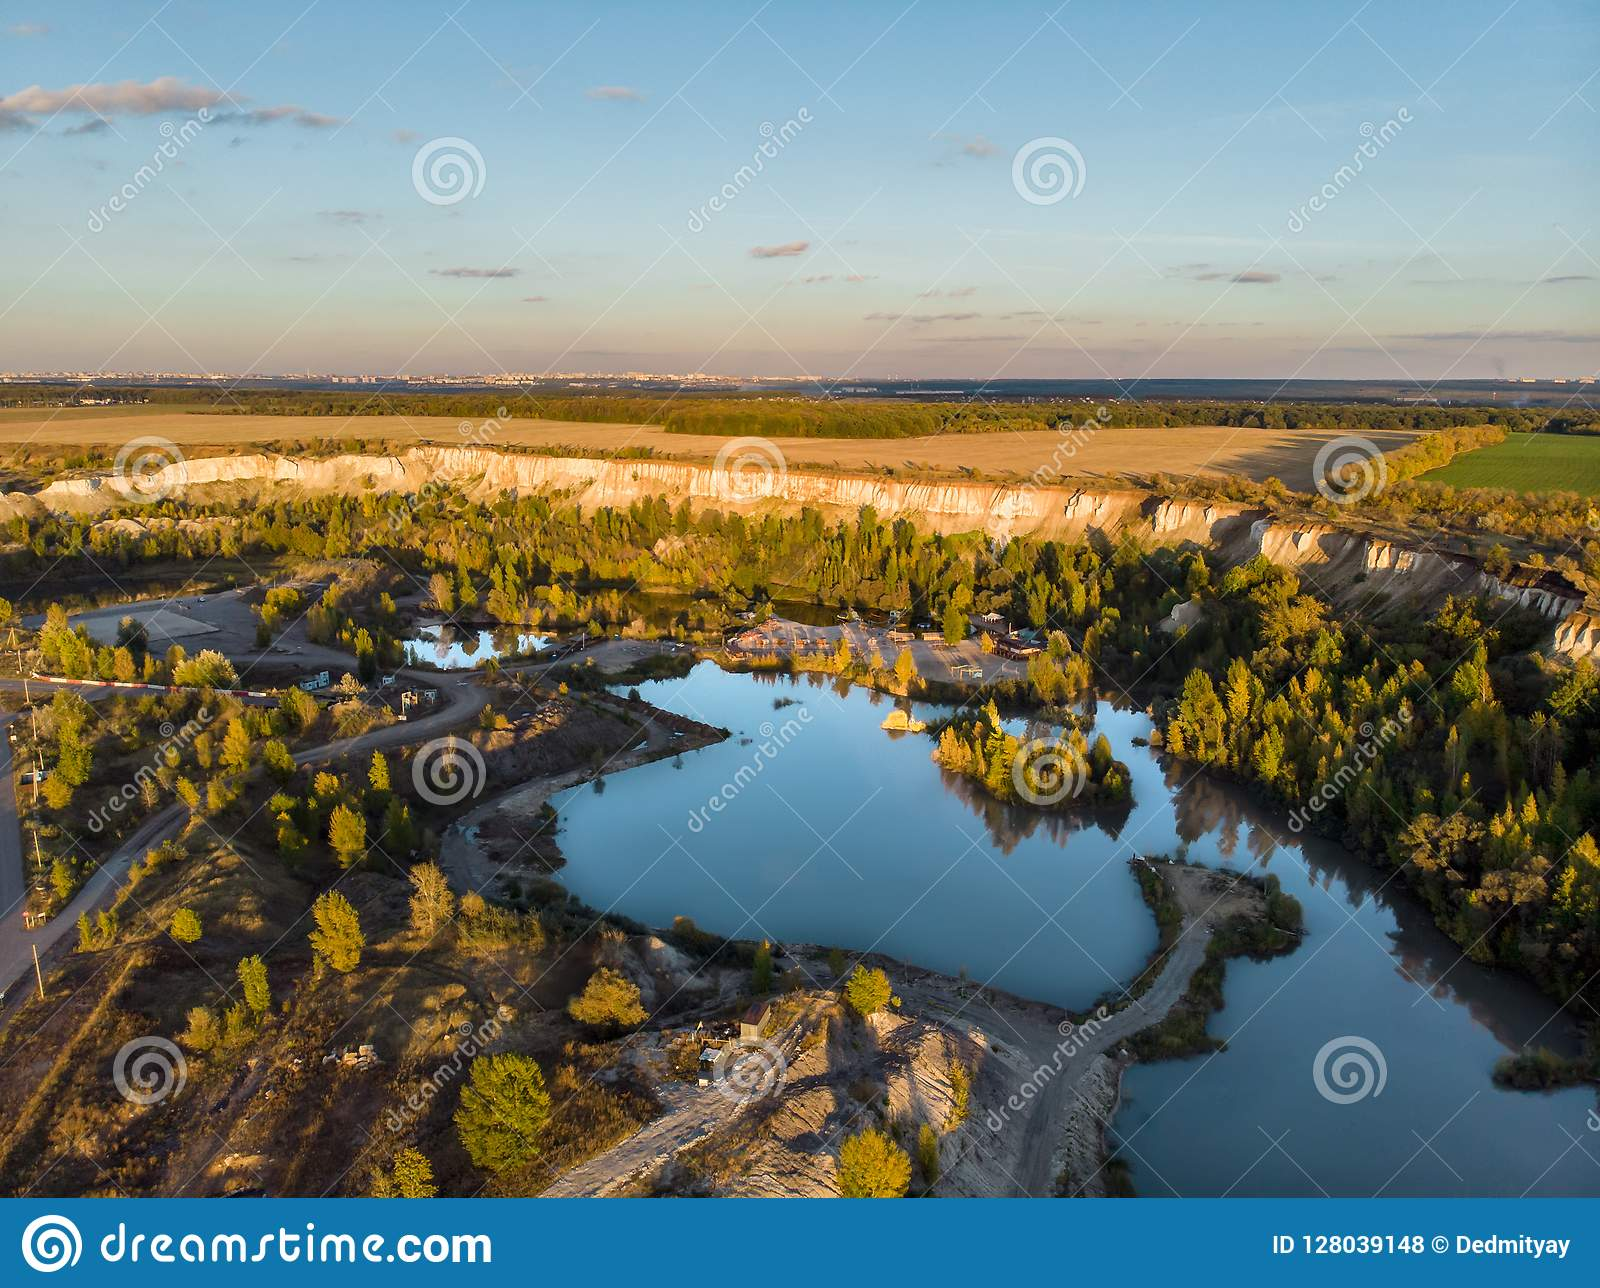 White well (Voronezh) - what is this place